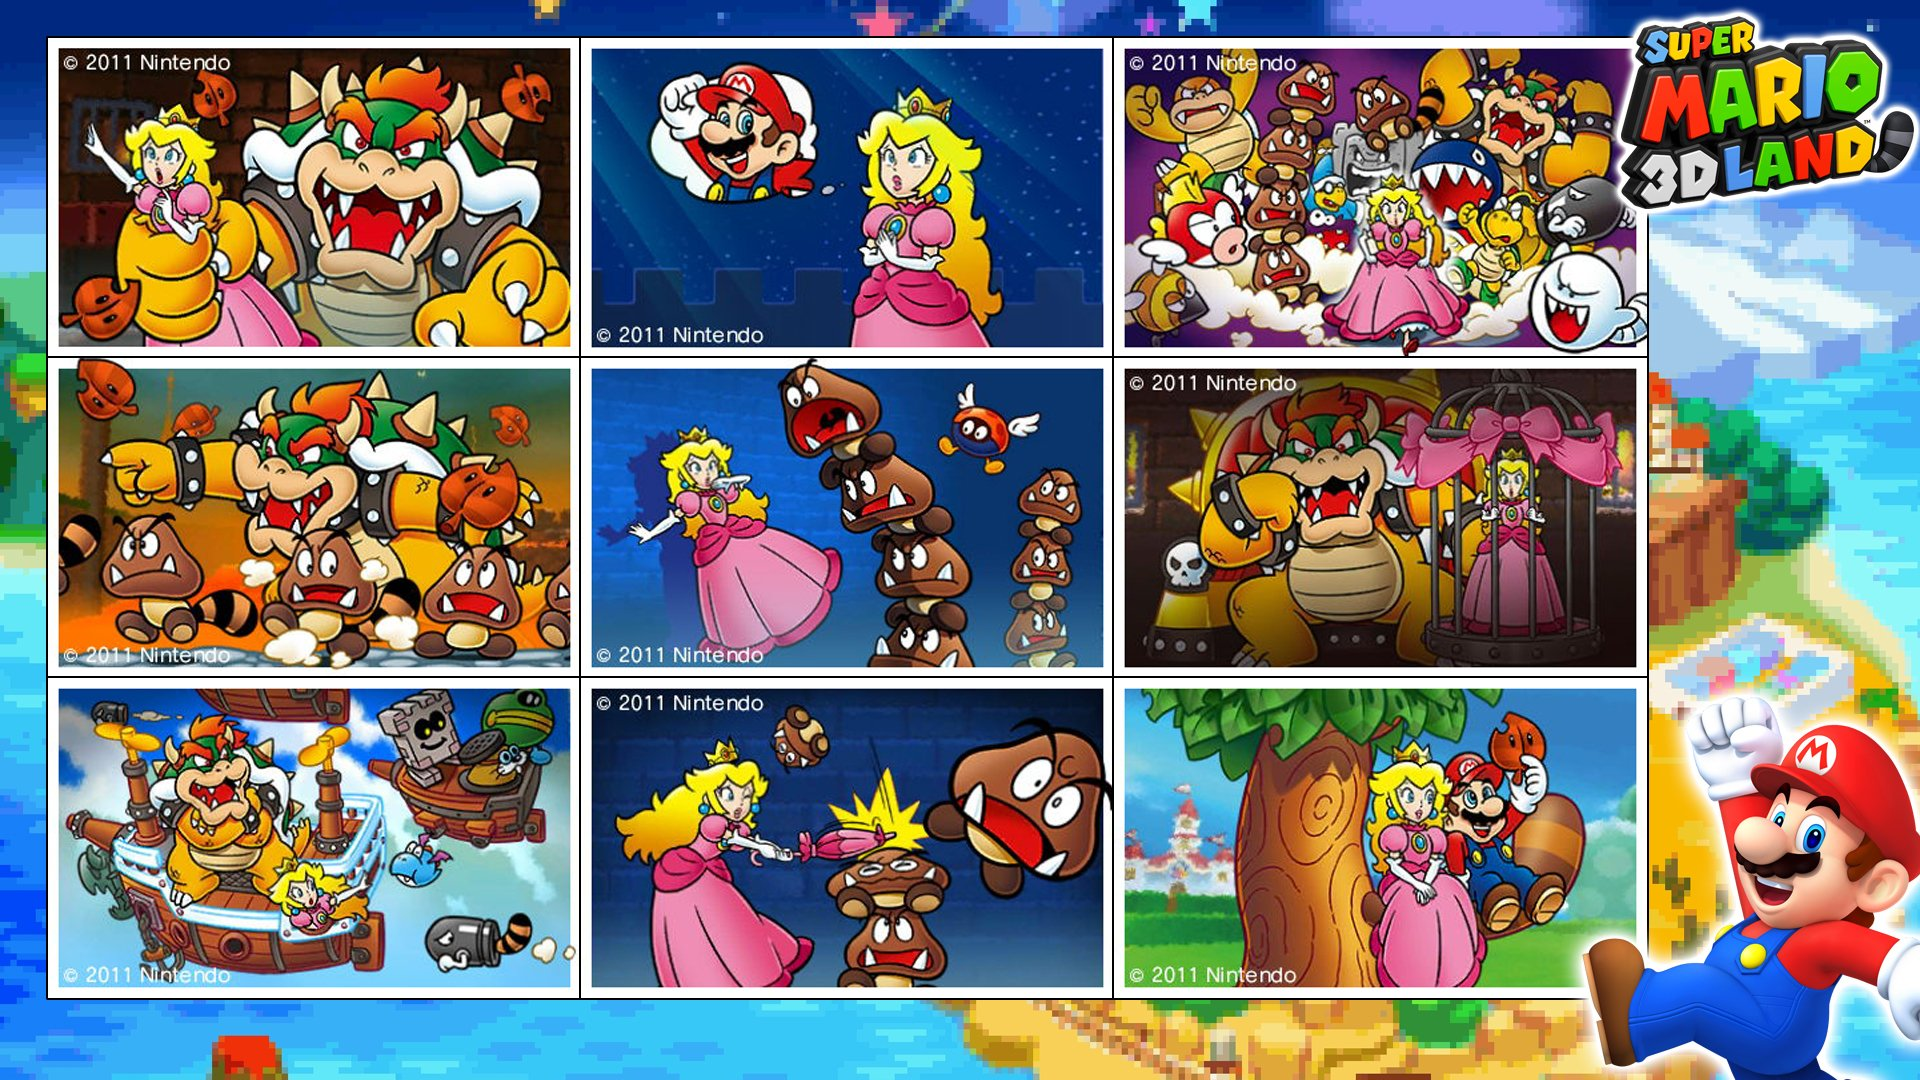 mario 3d land hd wallpaper and background image